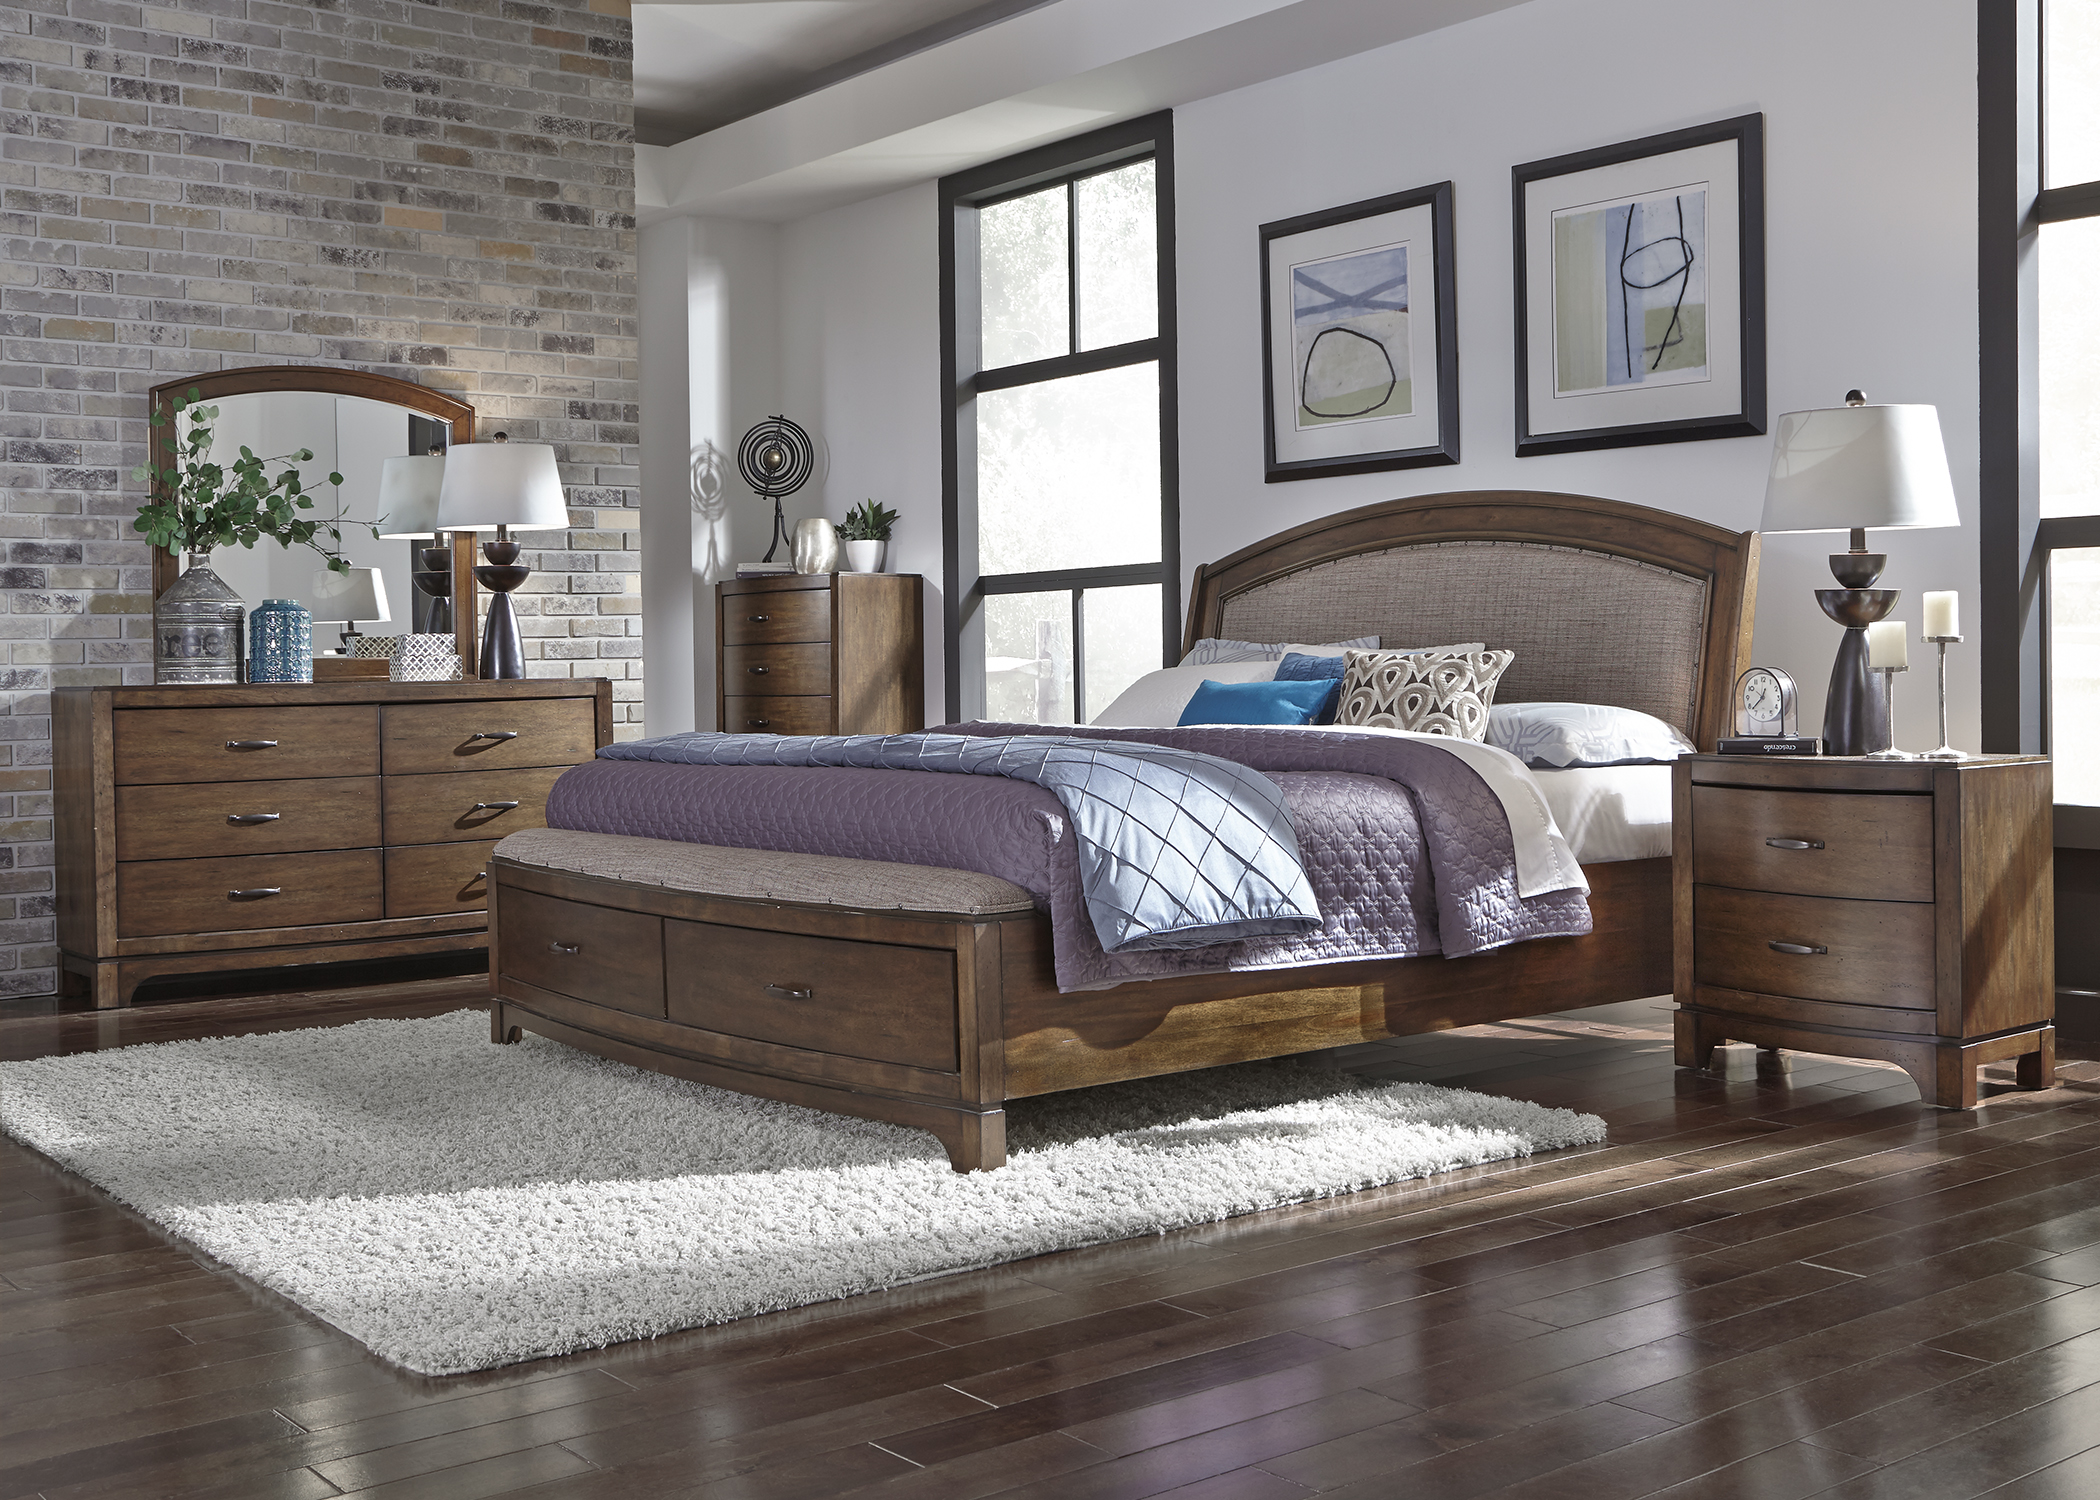 liberty furniture bedroom sets liberty avalon iii bedroom 705 bed dresser mirror chest 15801